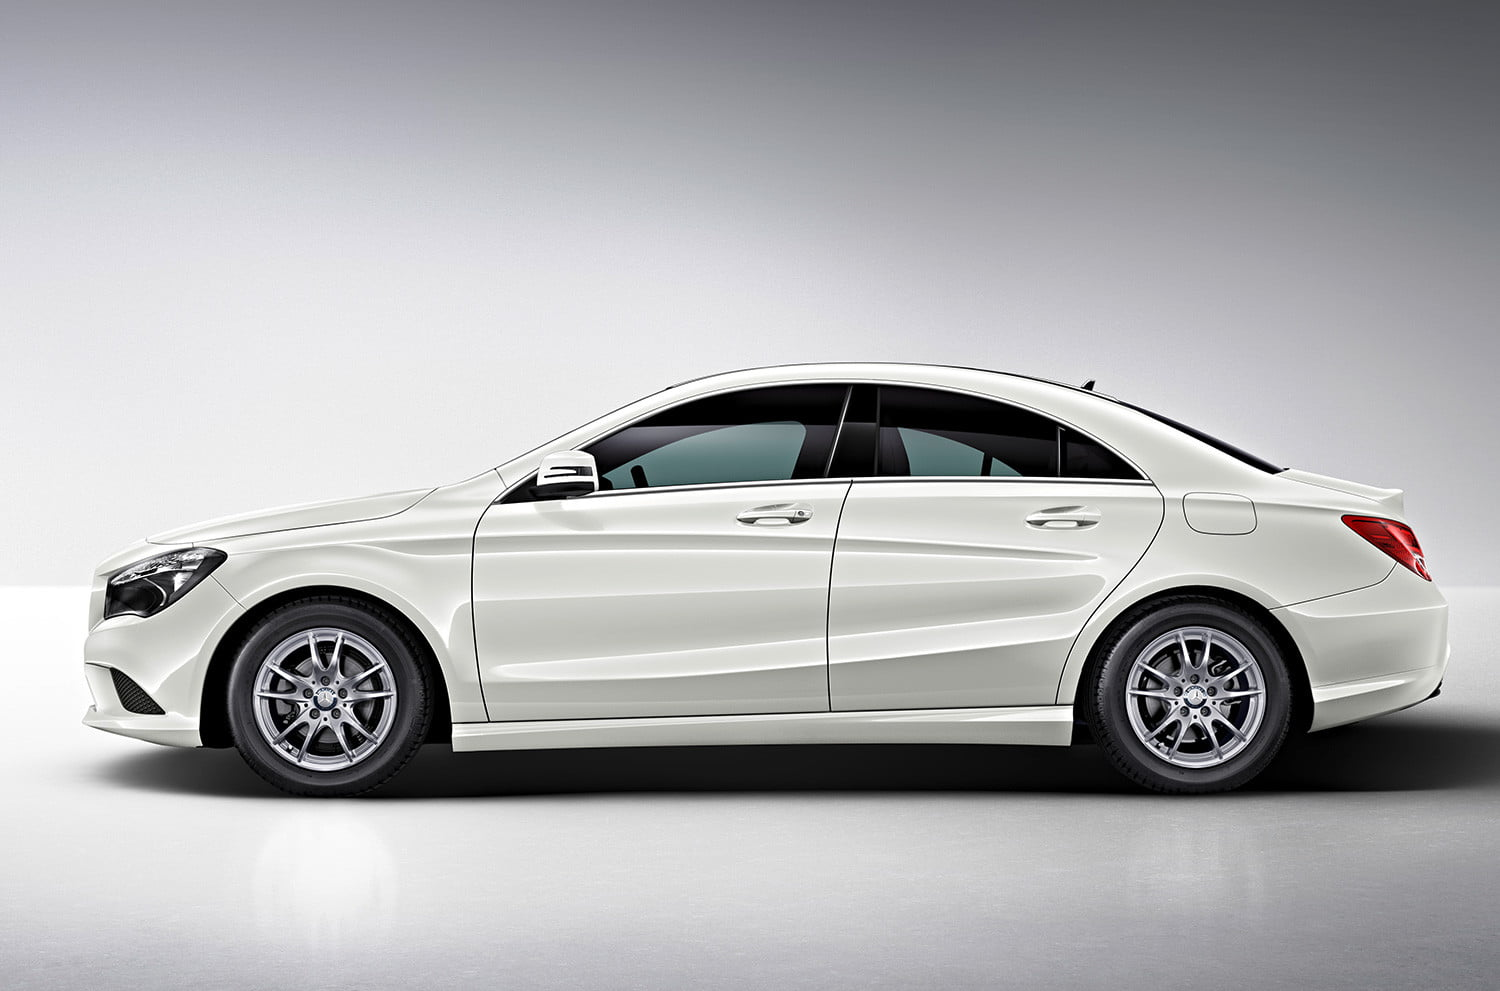 2015 audi a3 vs 2014 mercedes benz cla250 digital trends for Mercedes benz 2015 cla